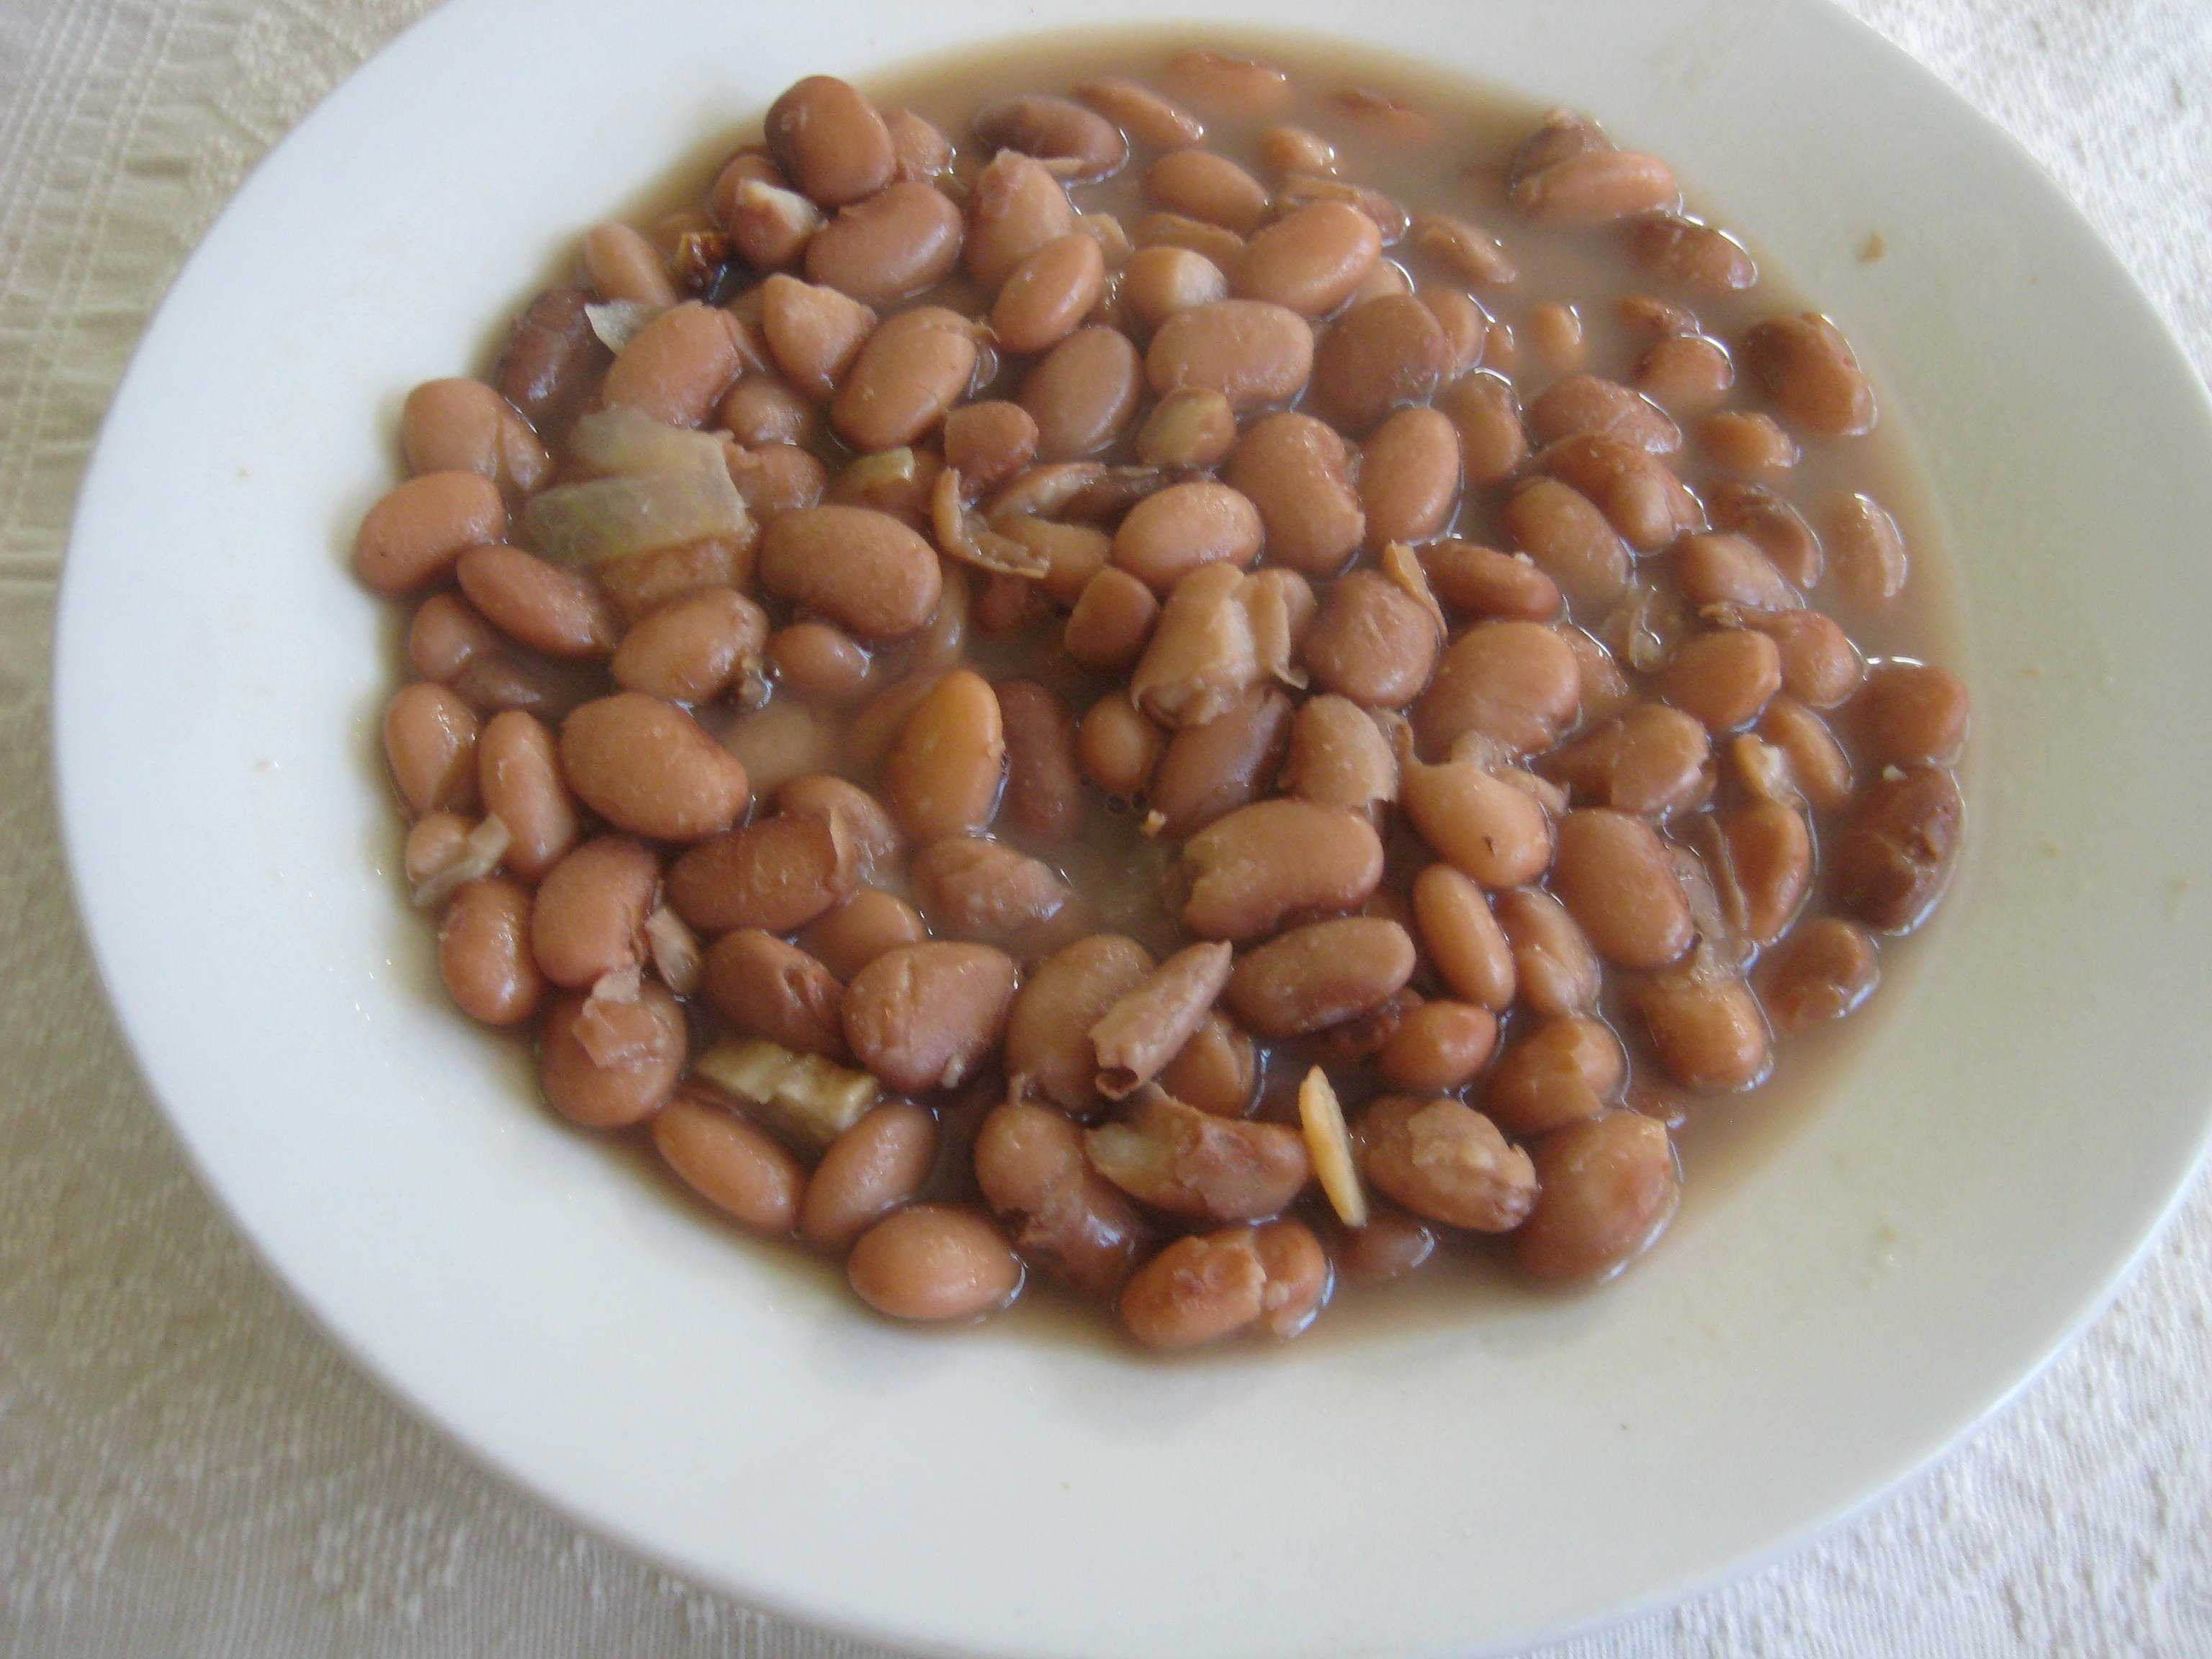 Basque beans. Photo by Euskal Kazeta